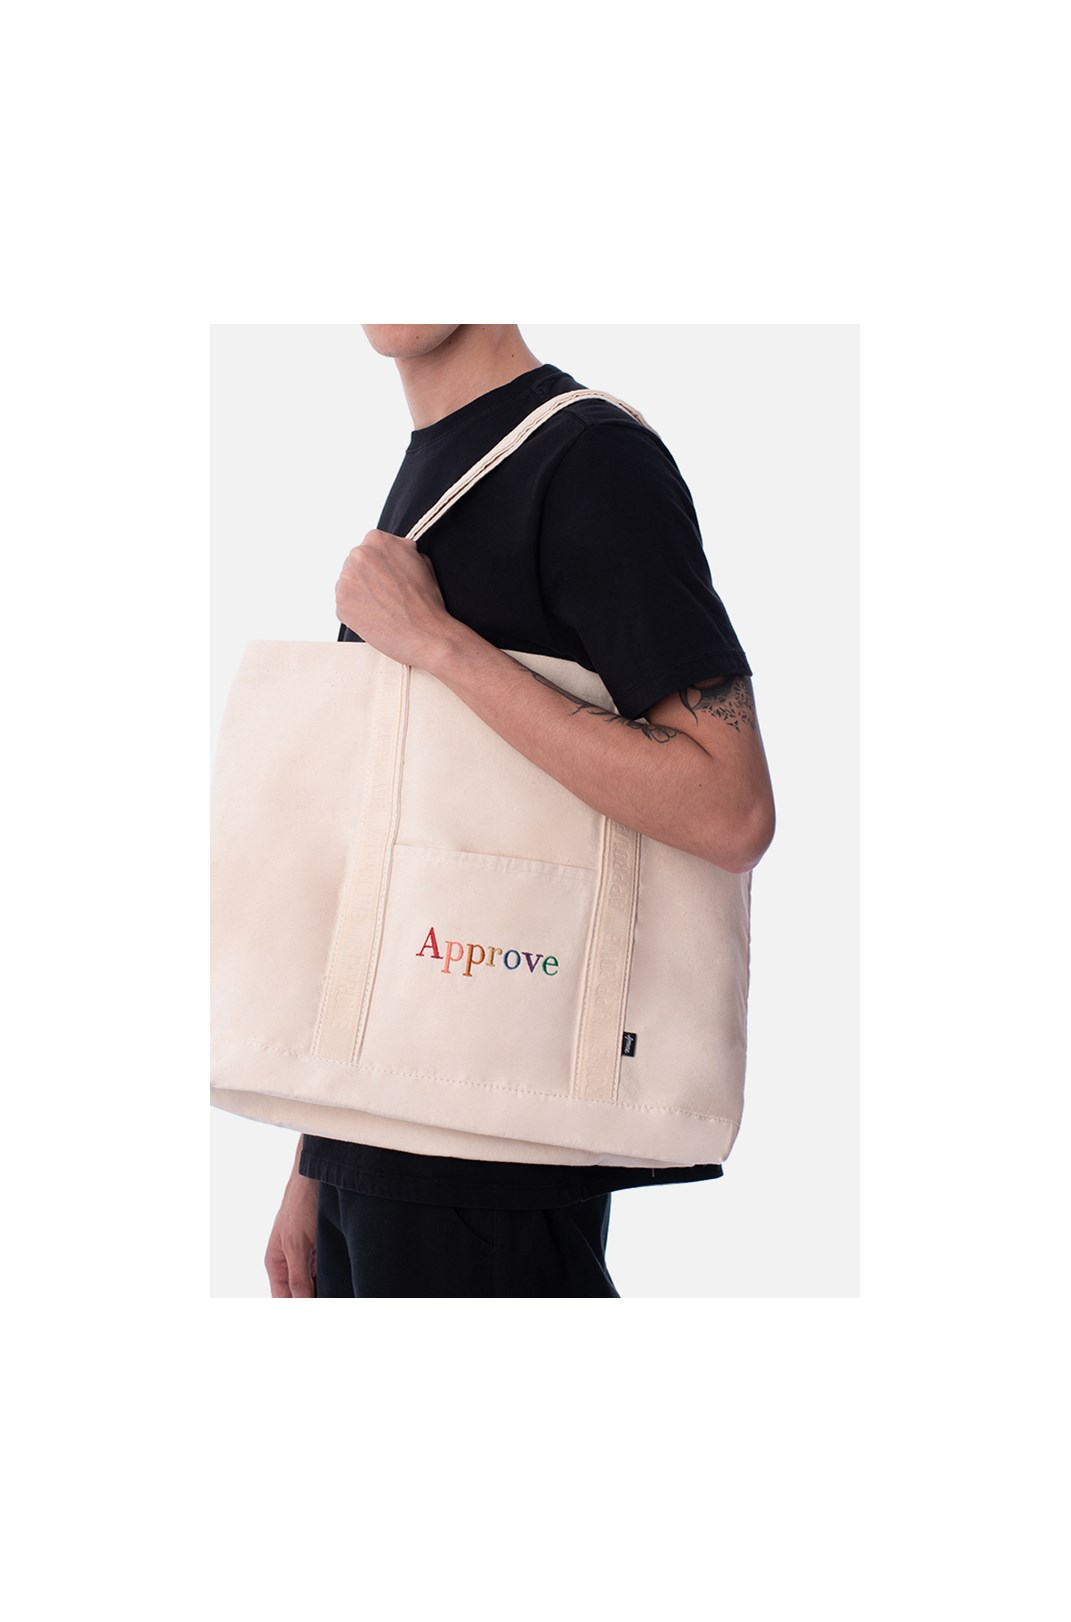 Ecobag Approve Rainbow Off White